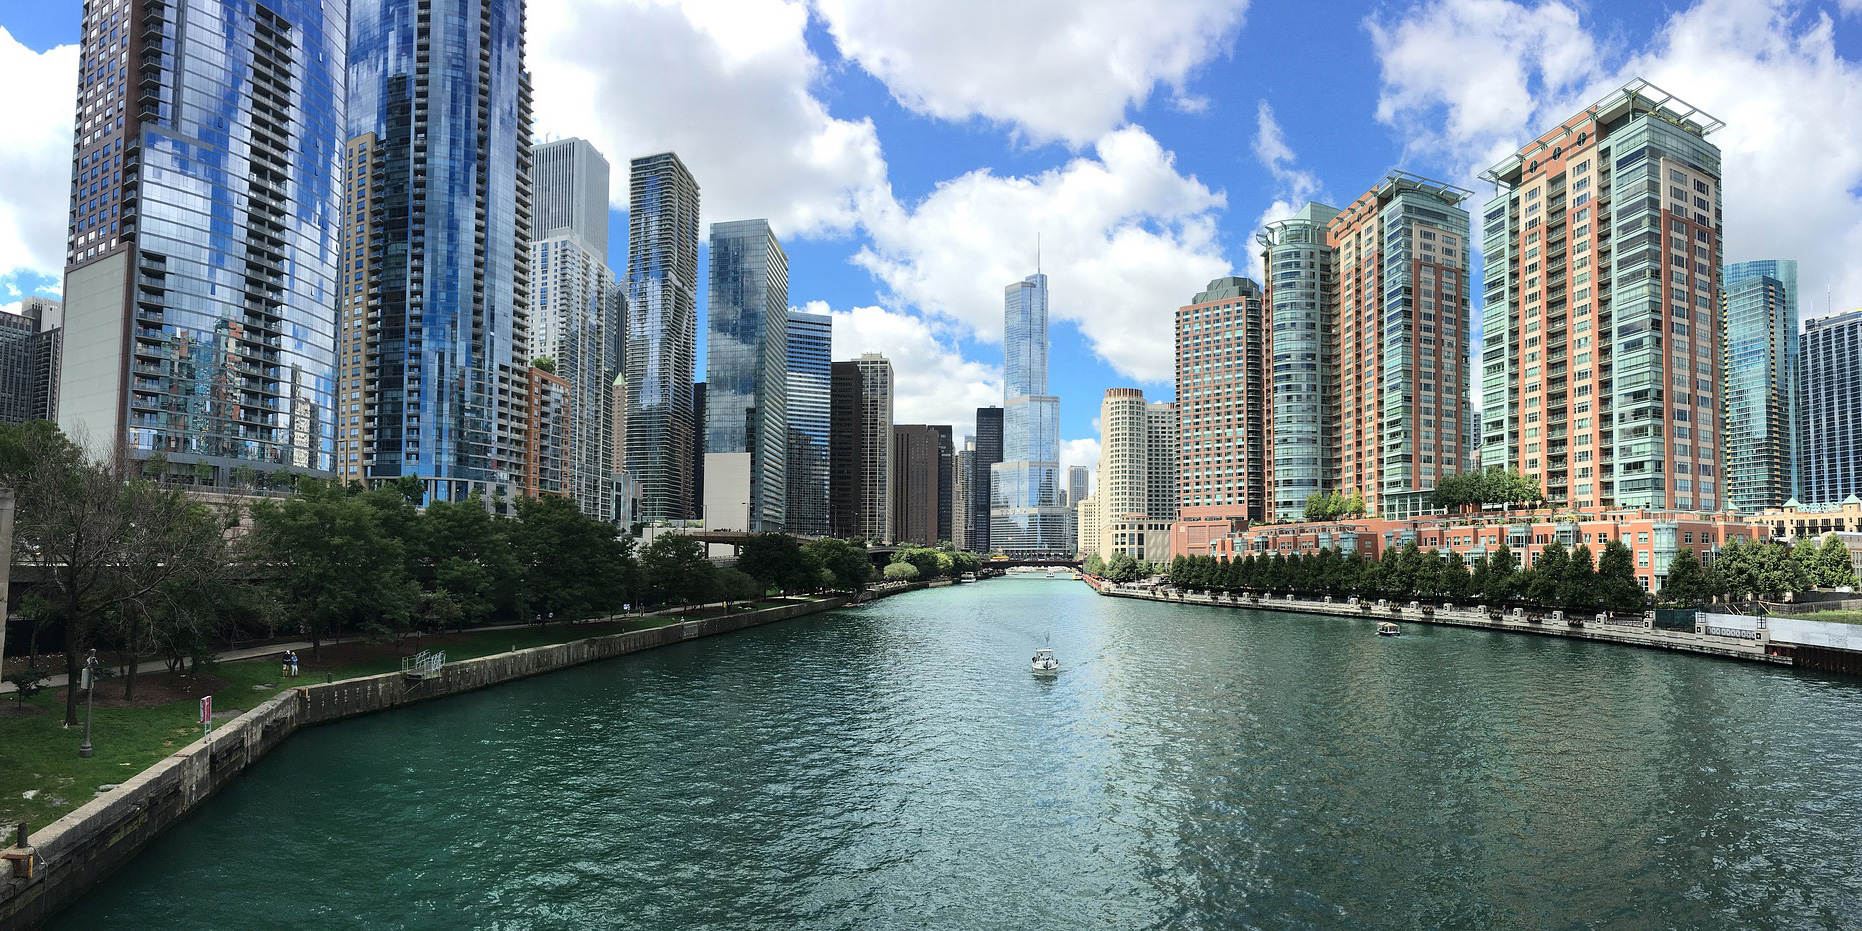 Chicago sets goal for 100 percent clean, renewable energy by 2035